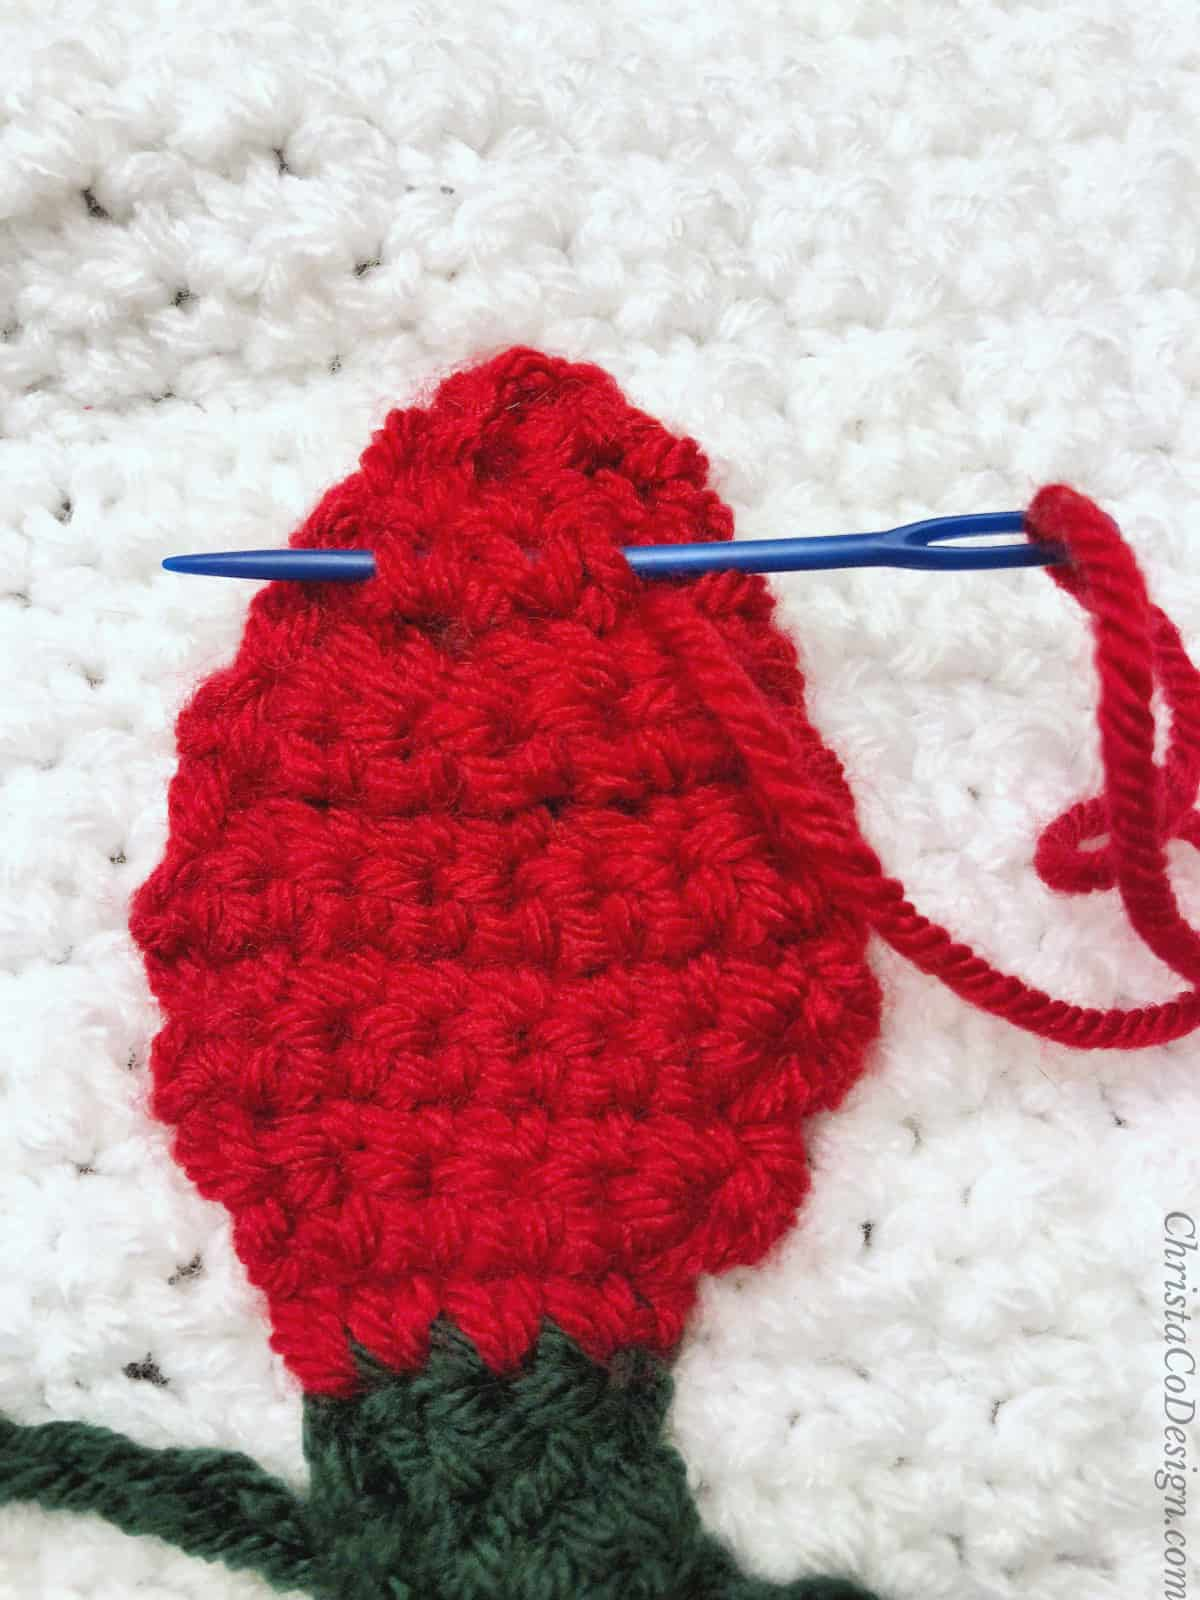 Red crochet Christmas light with blue needle through it.